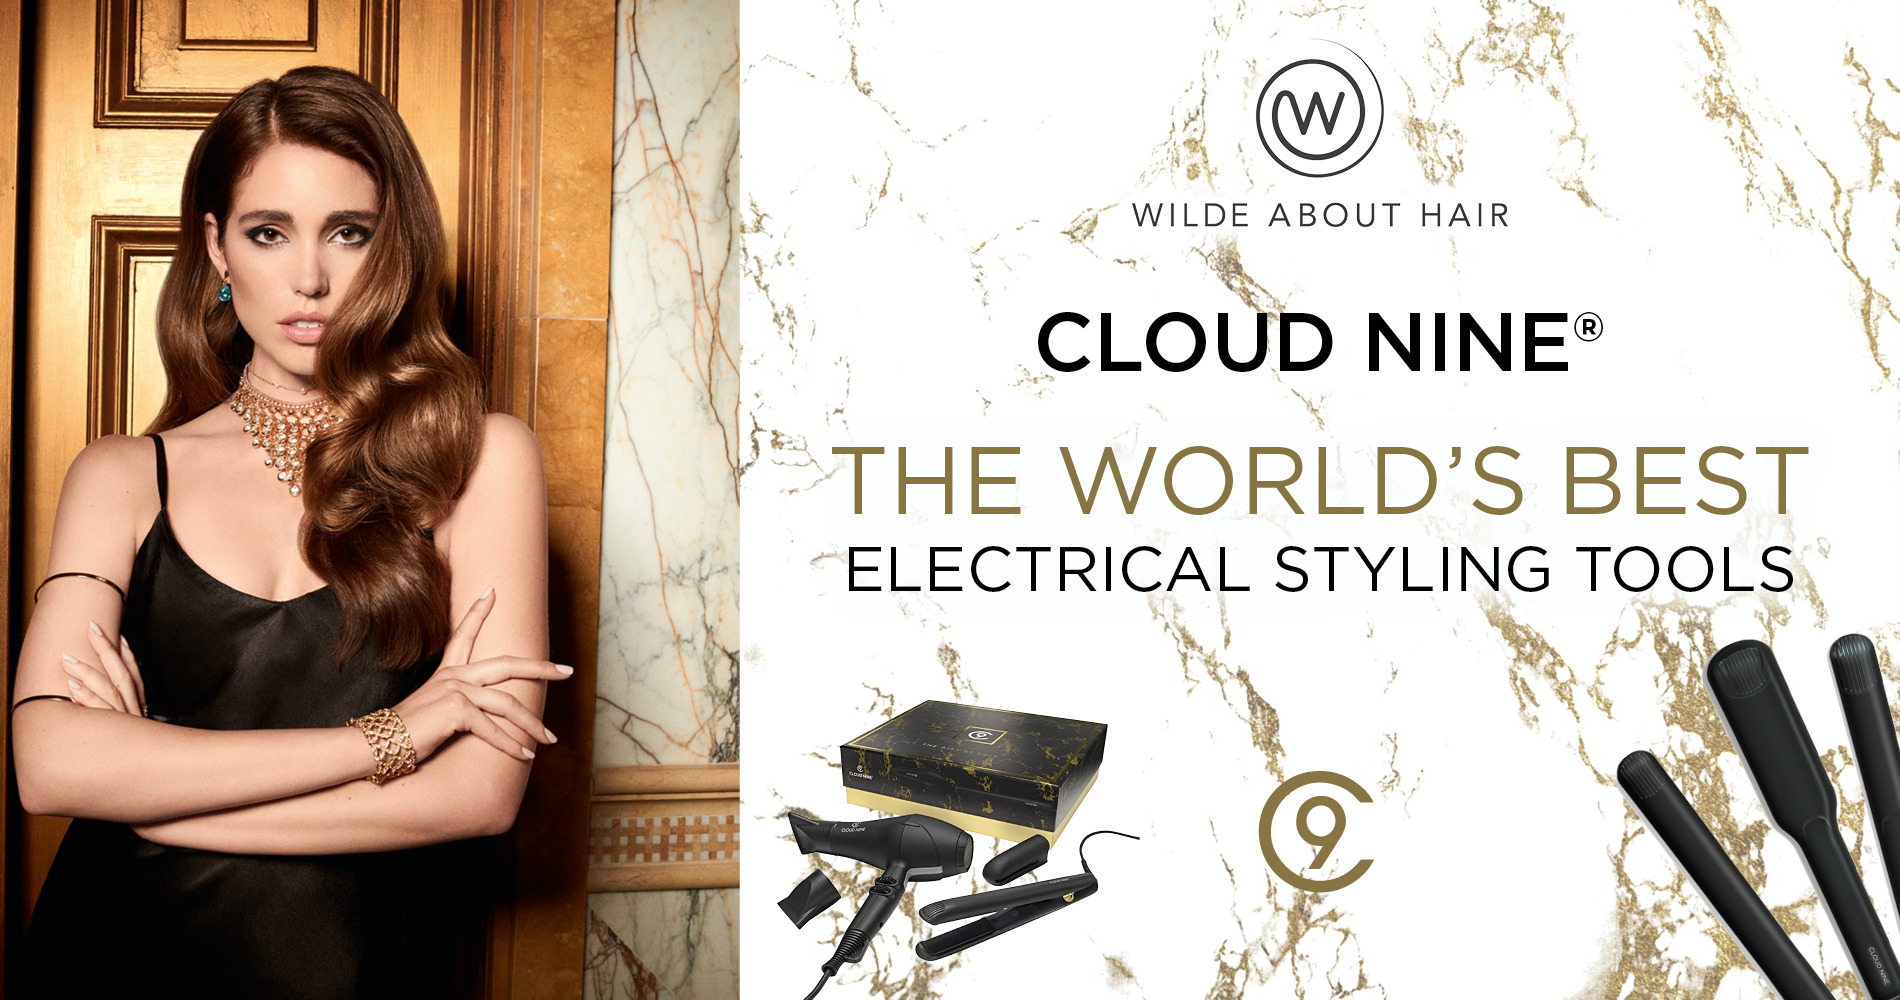 Cloud Nine - World's best electrical styling tools